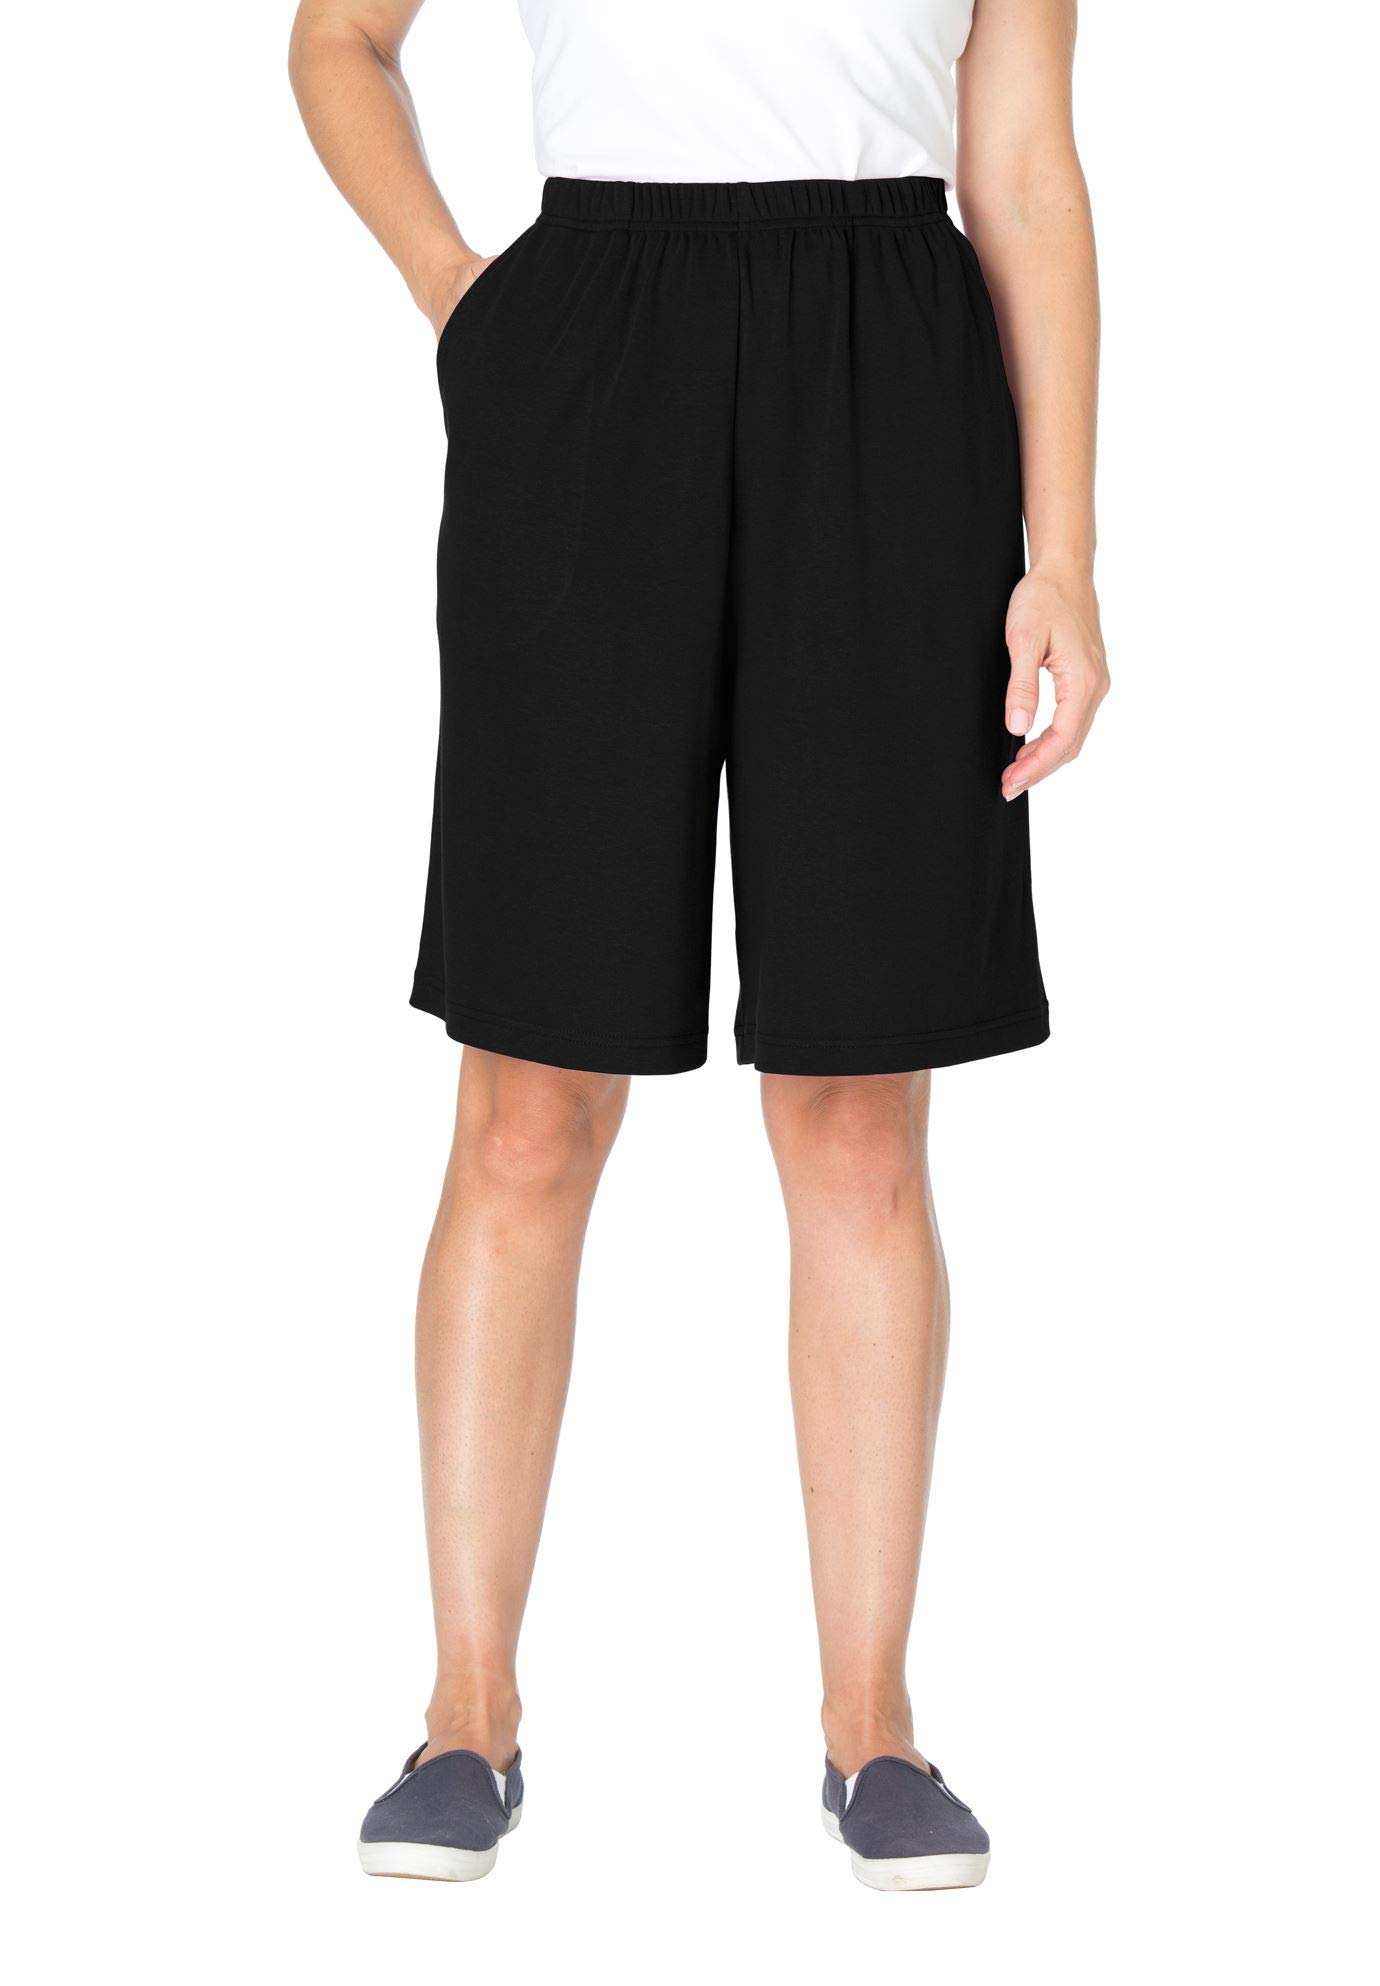 Women's Plus Size 7-Day Knit Short by Woman Within (Image #1)